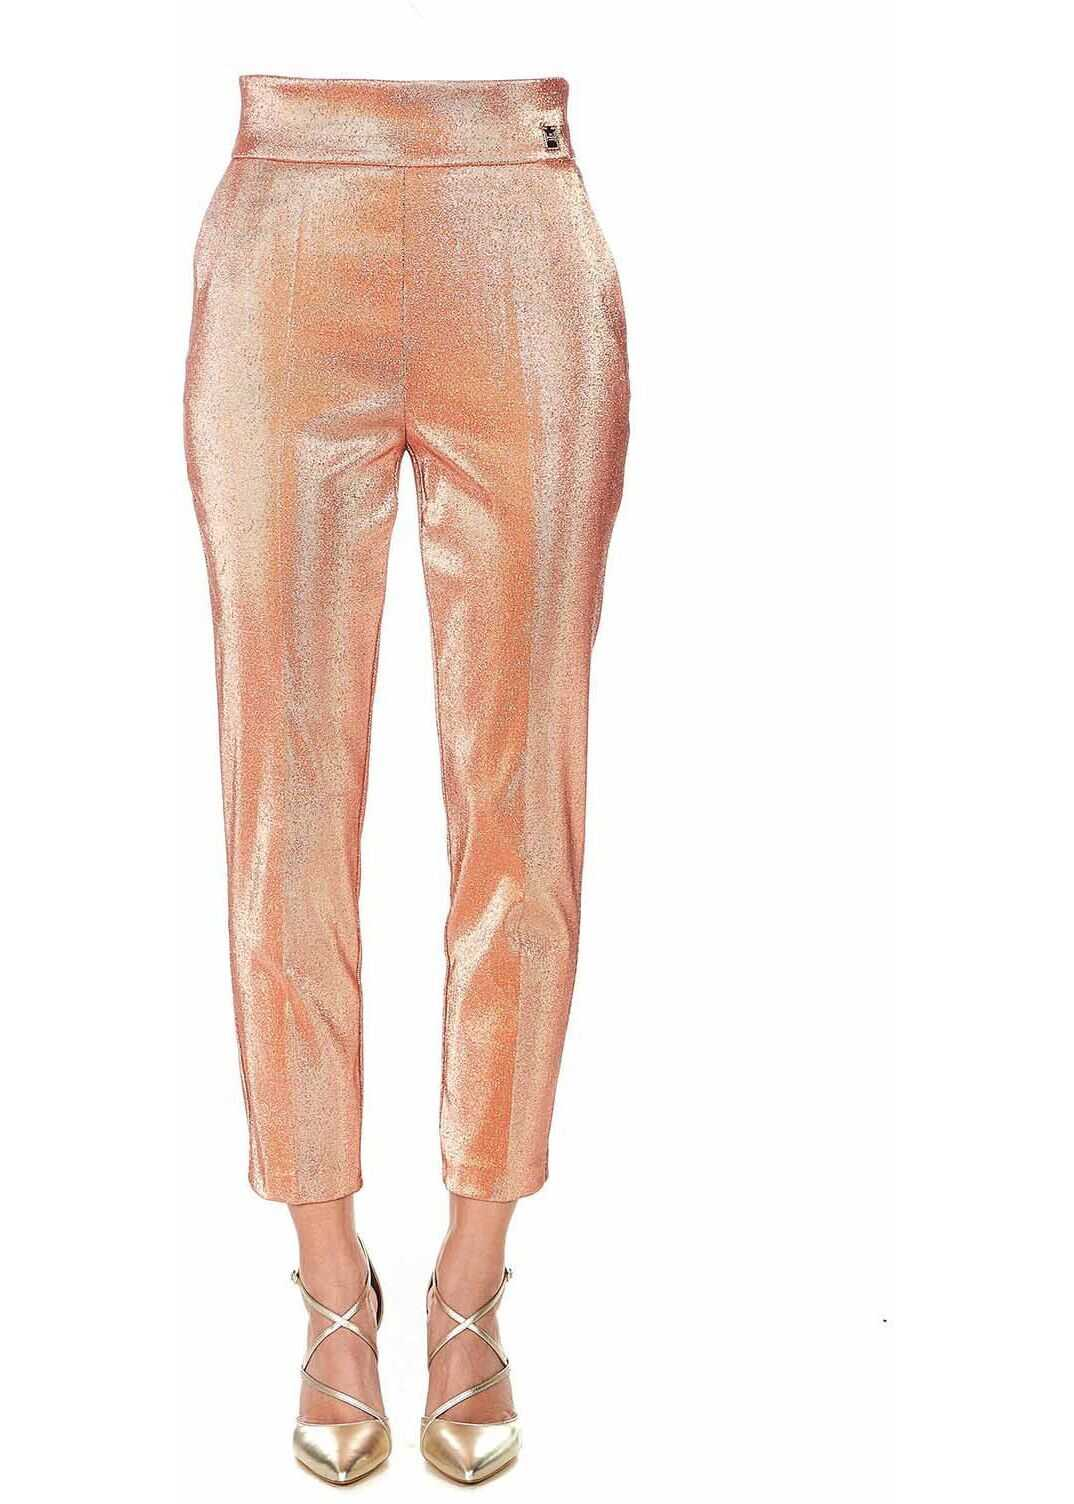 Elisabetta Franchi Trousers with glitter finish Pink